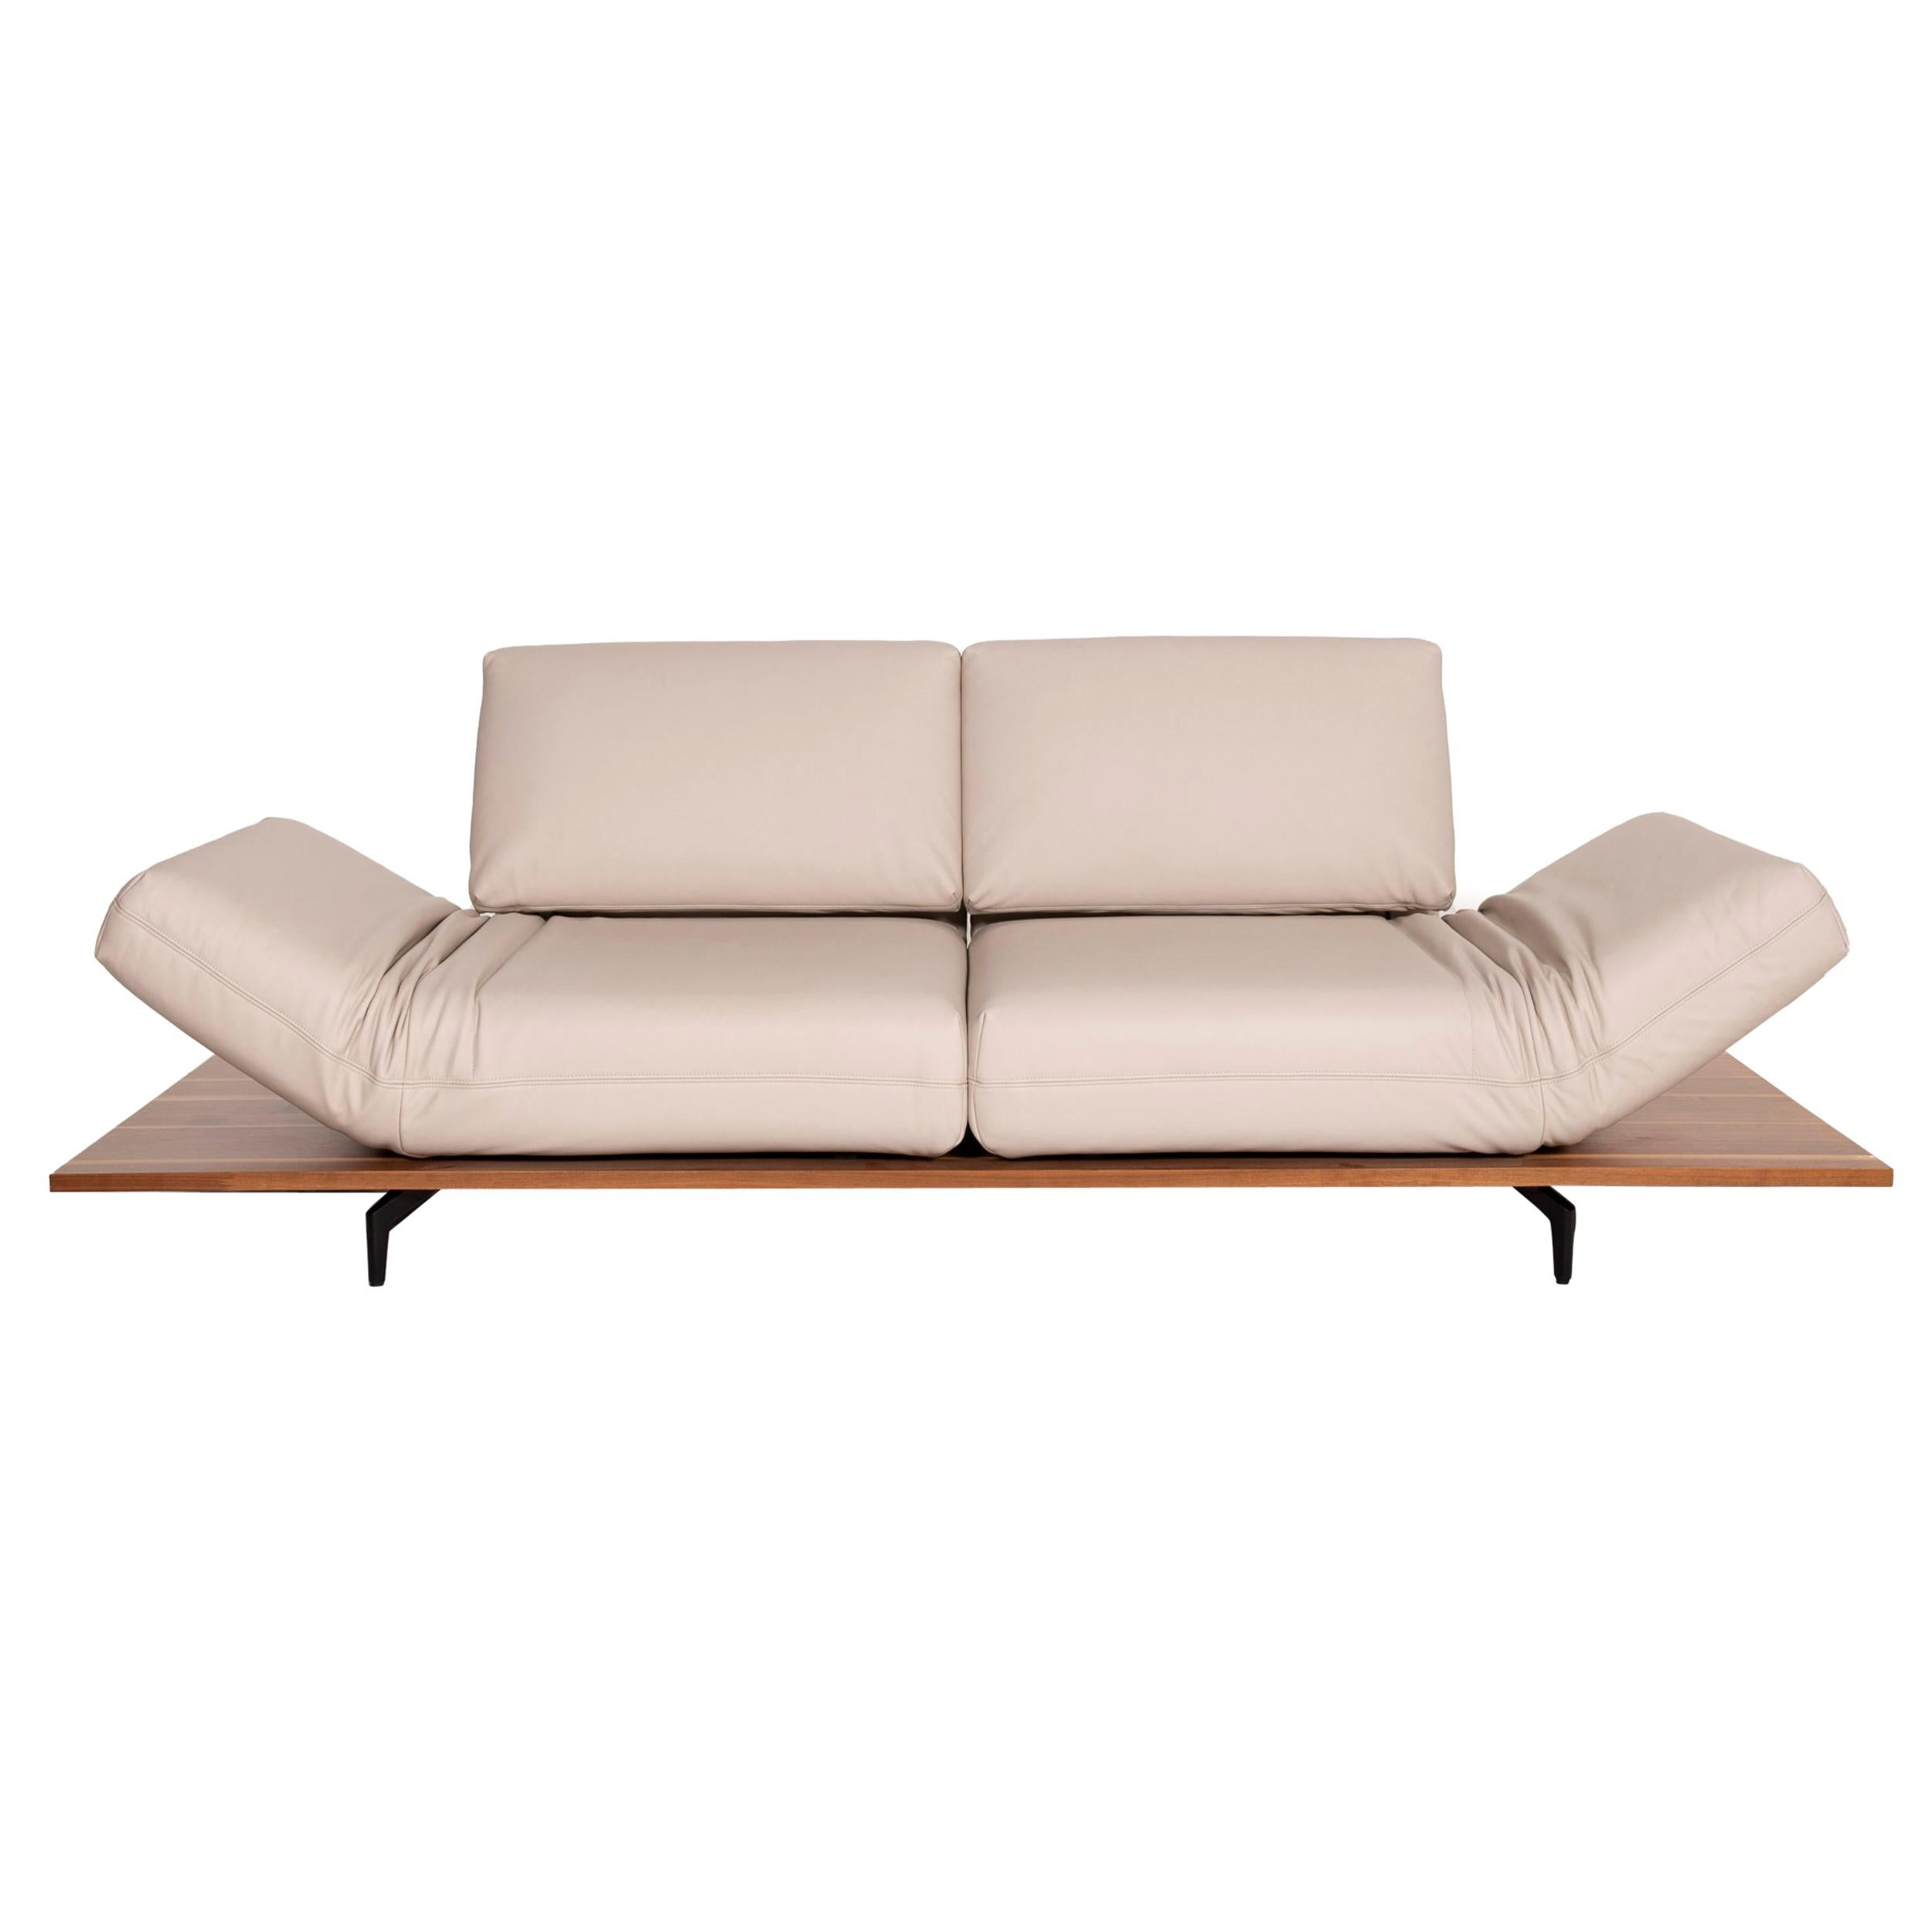 Rolf Benz Aura Leather Sofa Cream Two-Seater Function, Reclining Function, Wood